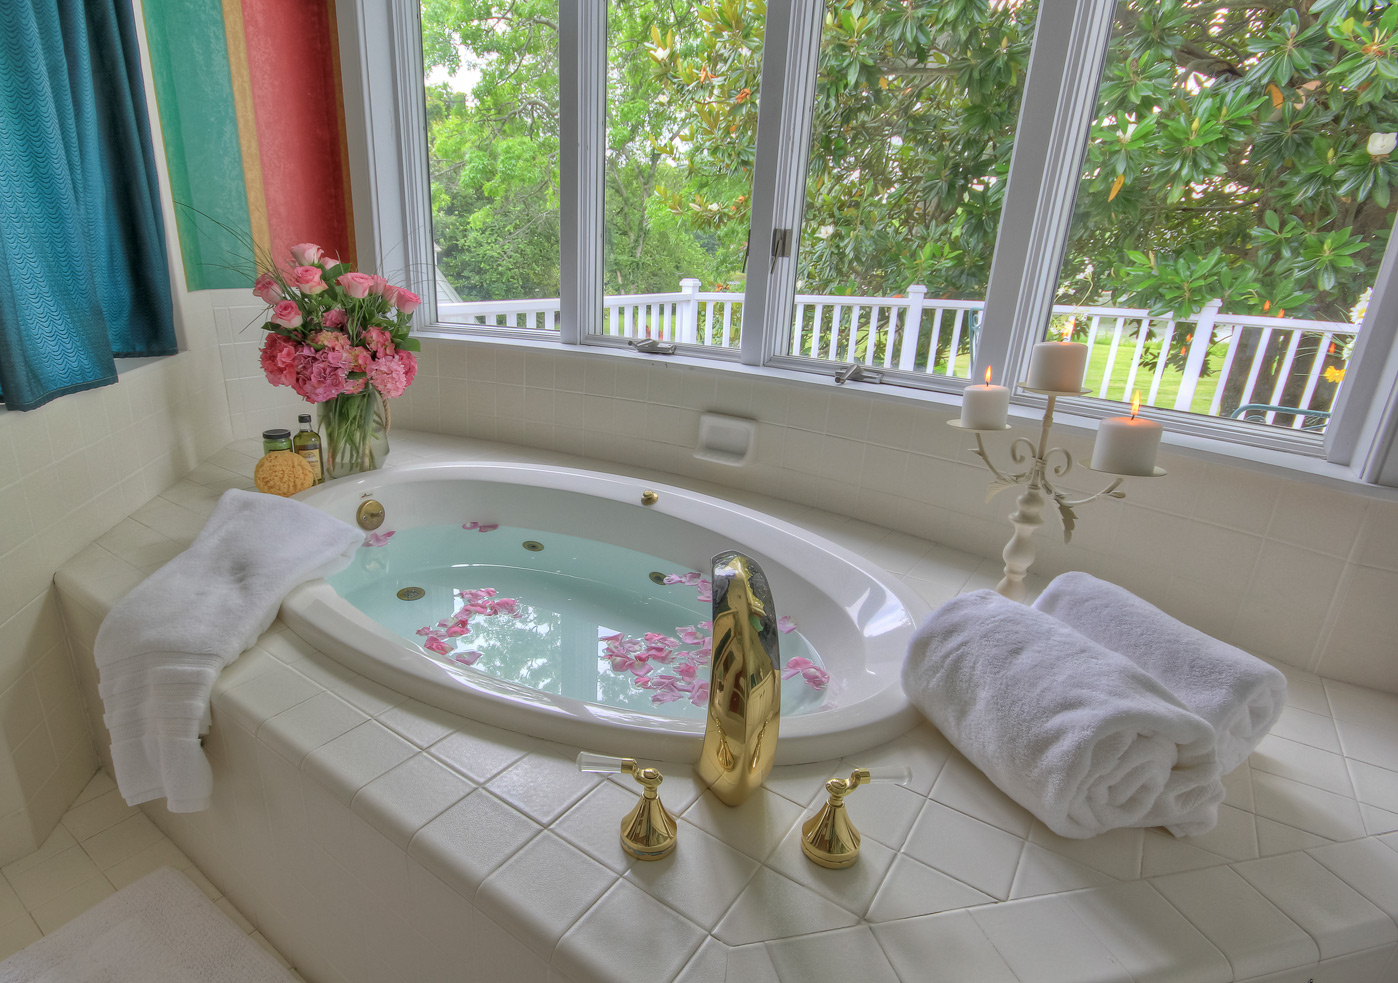 jacuzzi tub by window at combsberry inn with drawn bath and rose petals